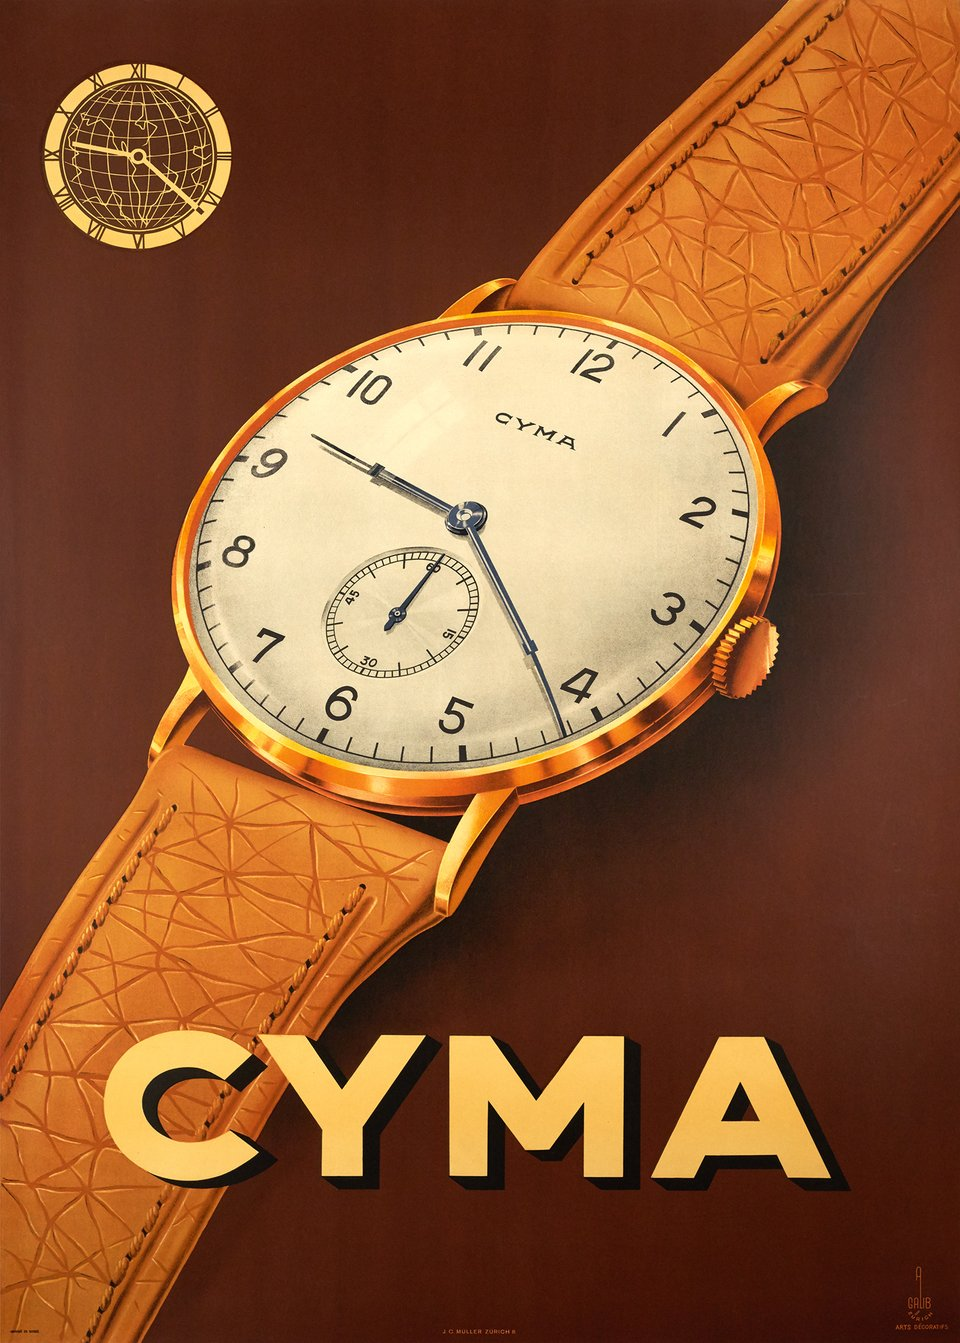 Cyma watch – Vintage poster – A GALIB – 1942